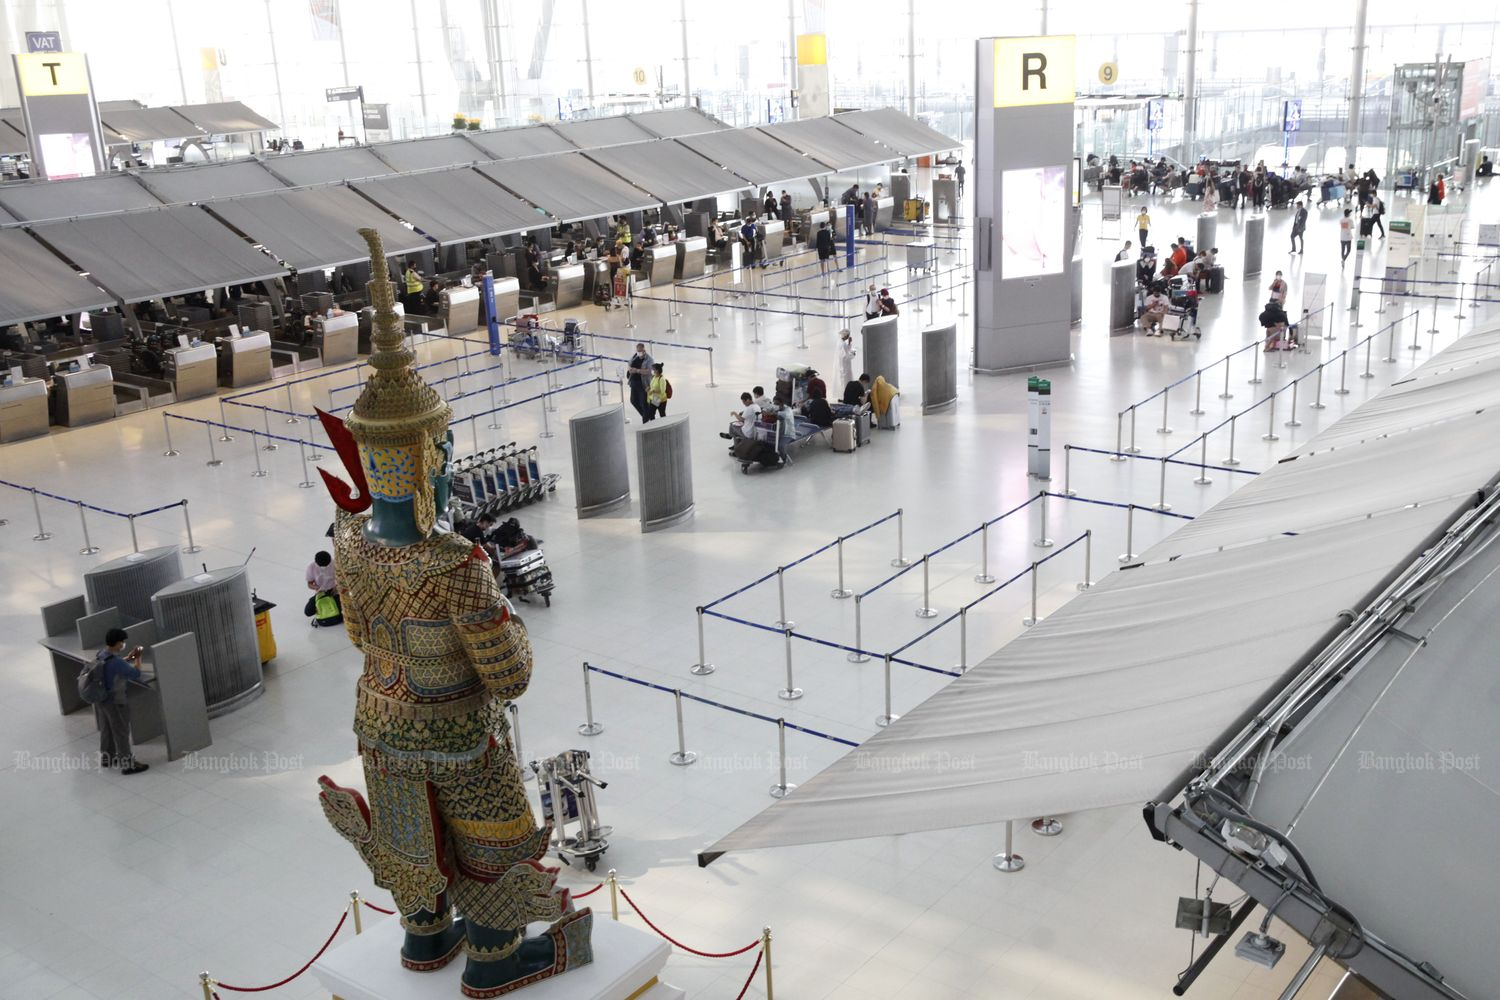 A view inside Suvarnabhumi airport in March. The number of foreign travellers arriving in Thailand has fallen by half since the virus outbreak. (Photo by Wichan Charoenkiatpakul)